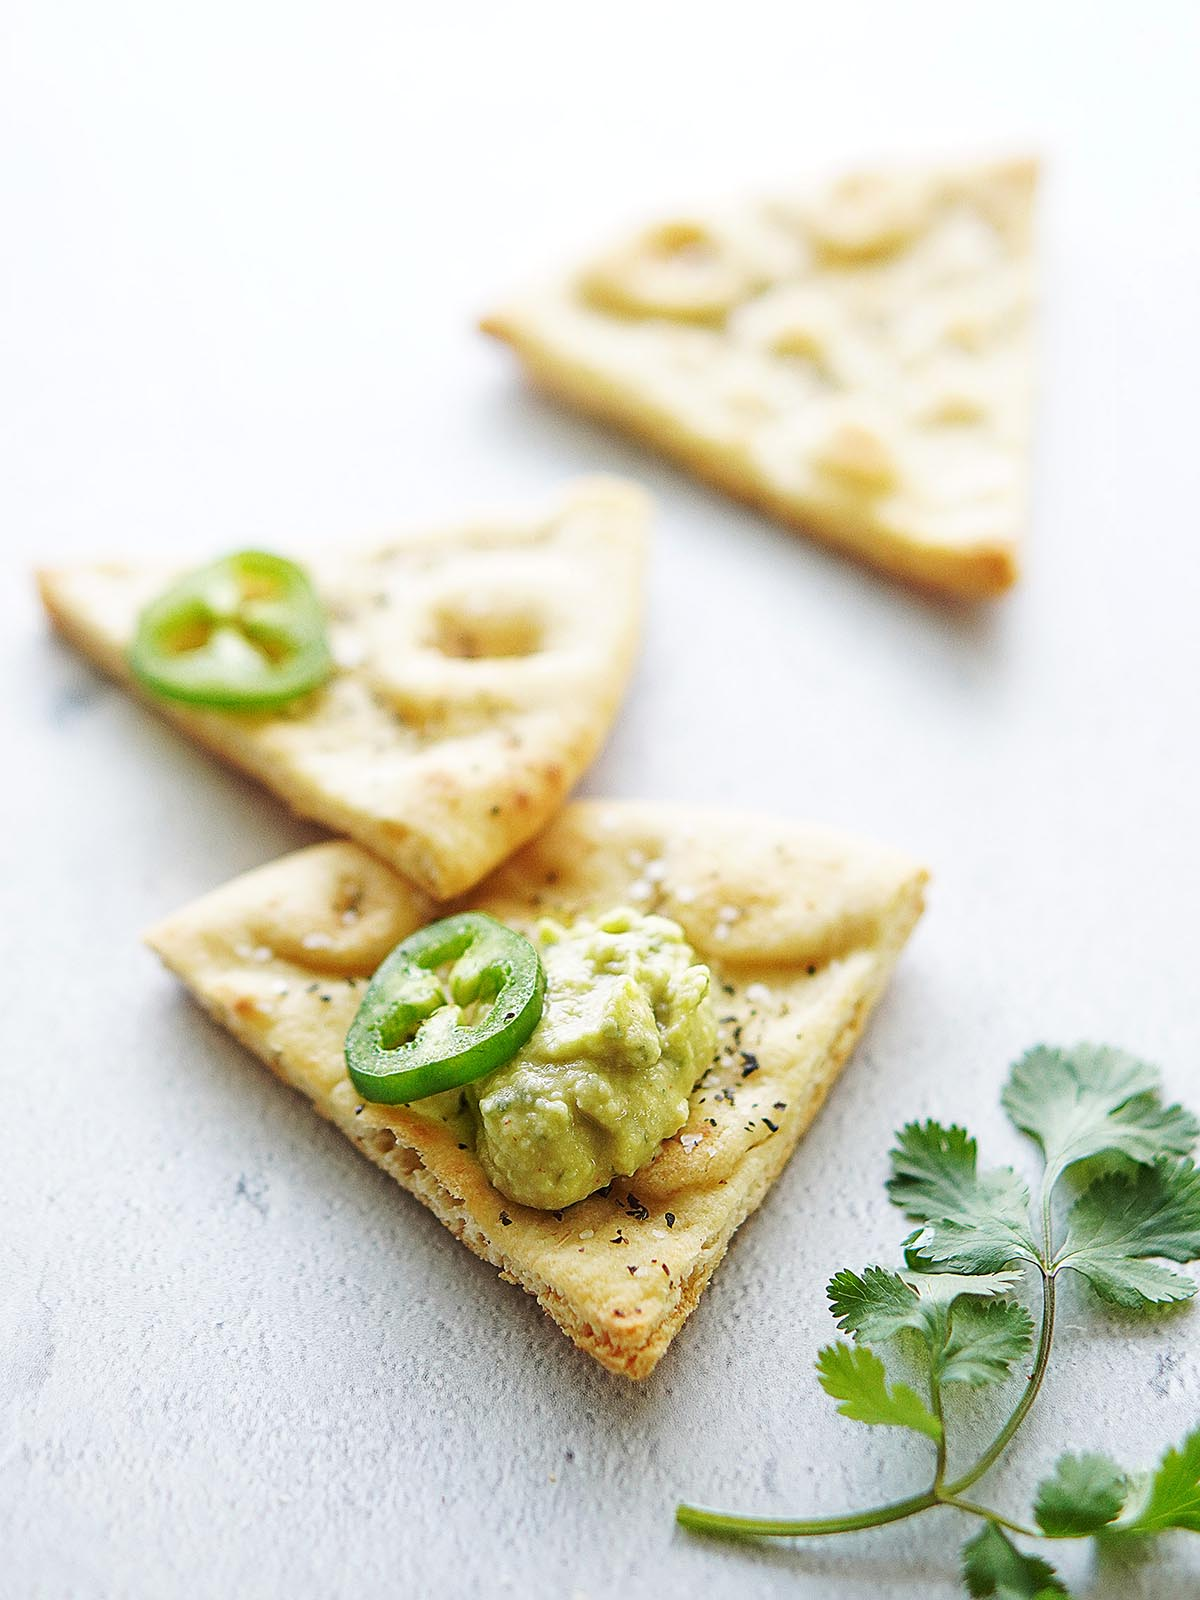 Crispy pita chips on a blue table with cilantro on the side.